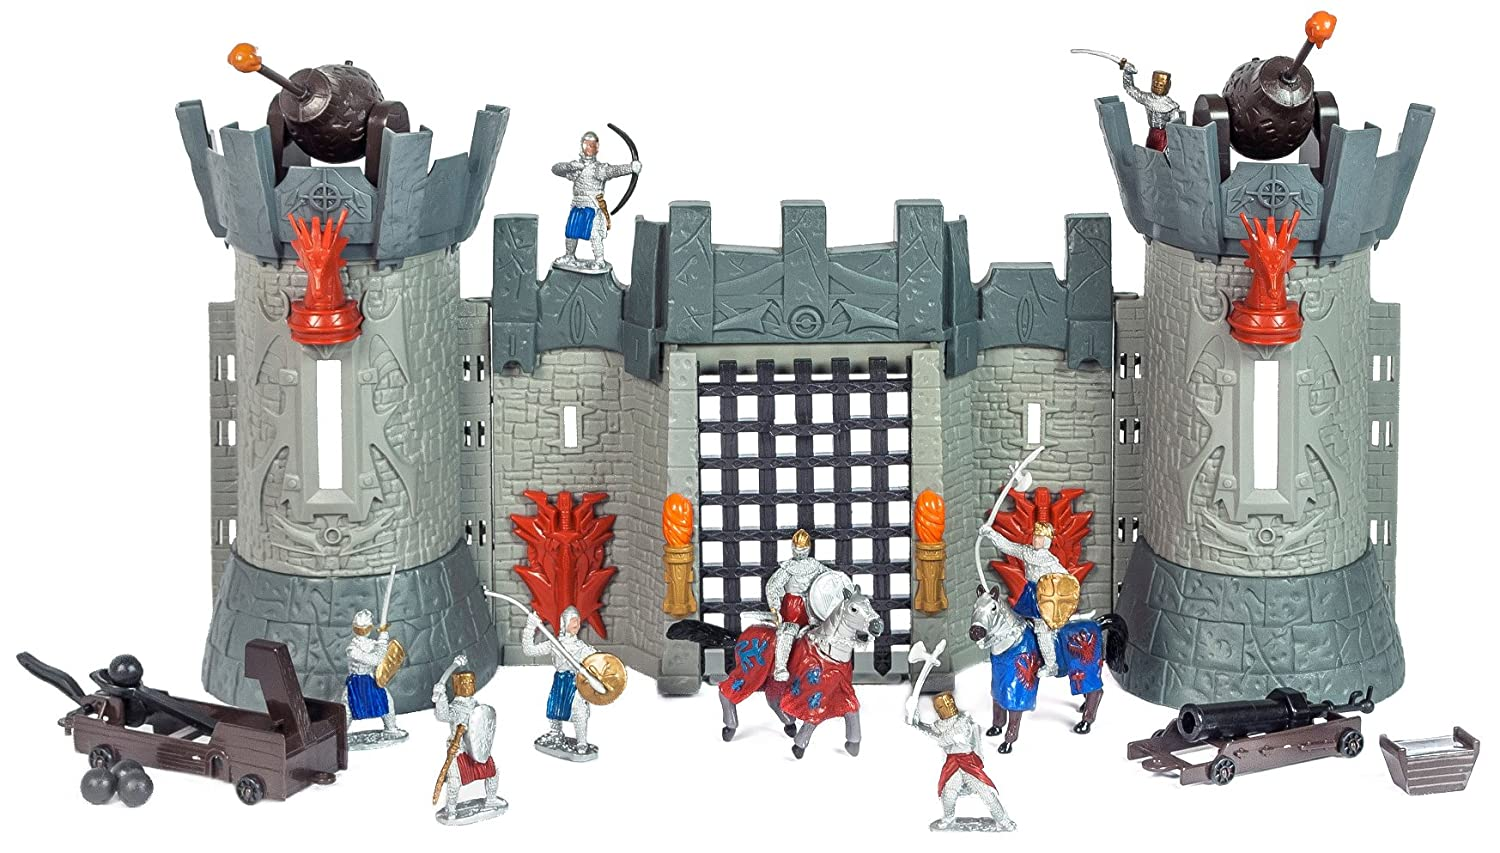 Toy Castle Show : Knights castle toy images